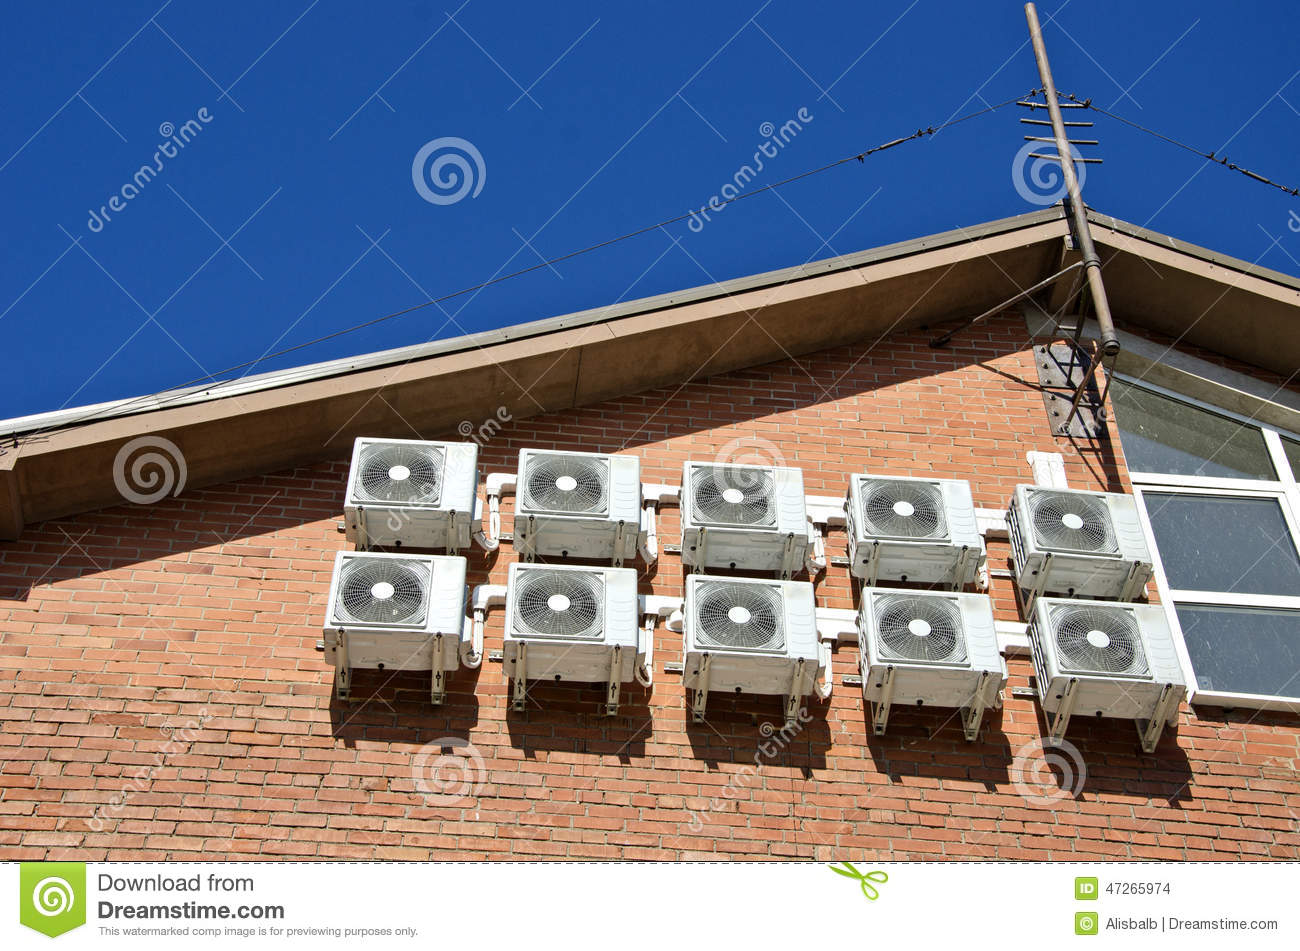 Air Conditioning Equipment Stock Photo Image: 47265974 #1D509D